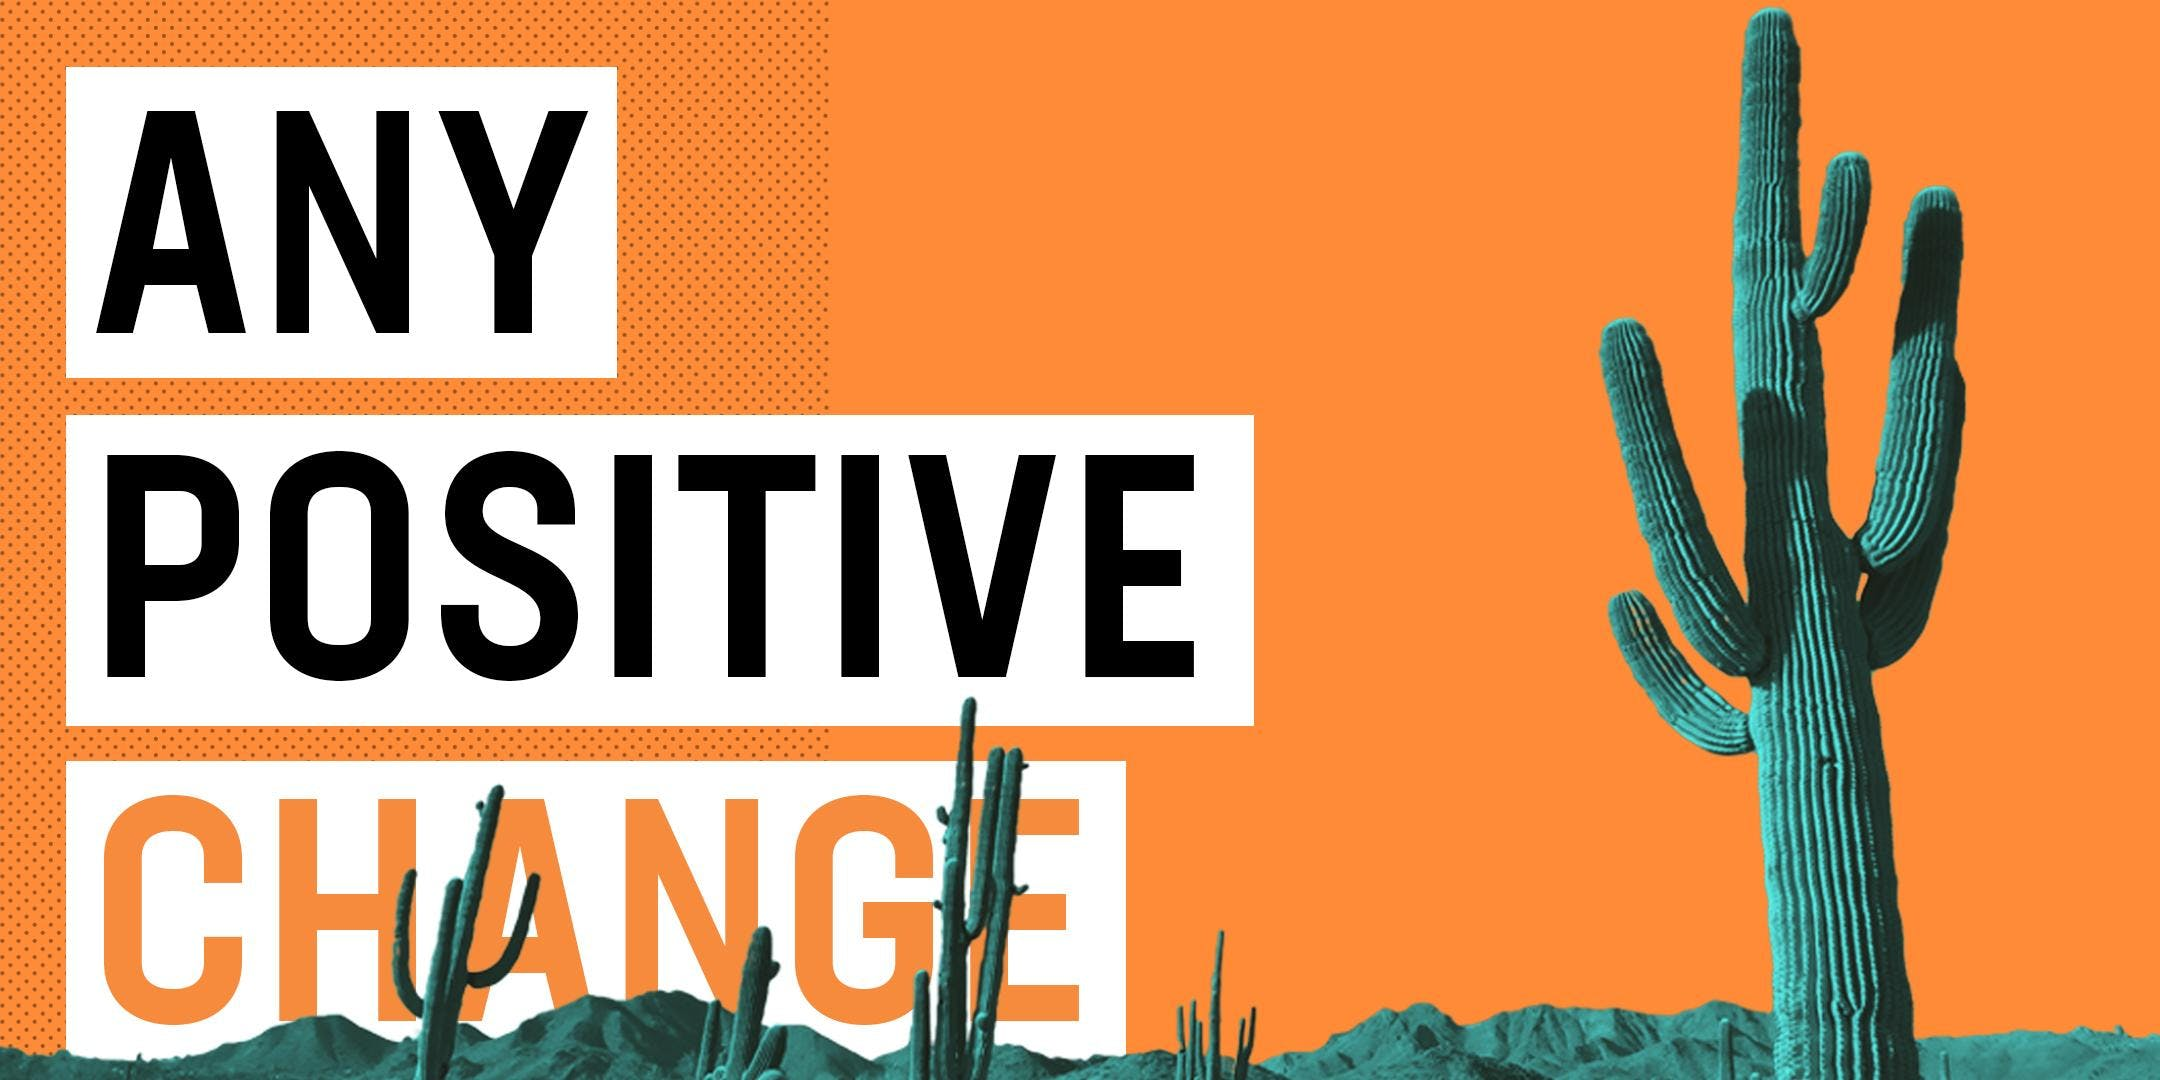 Any Positive Change - AZ Harm Reduction Conference 2019